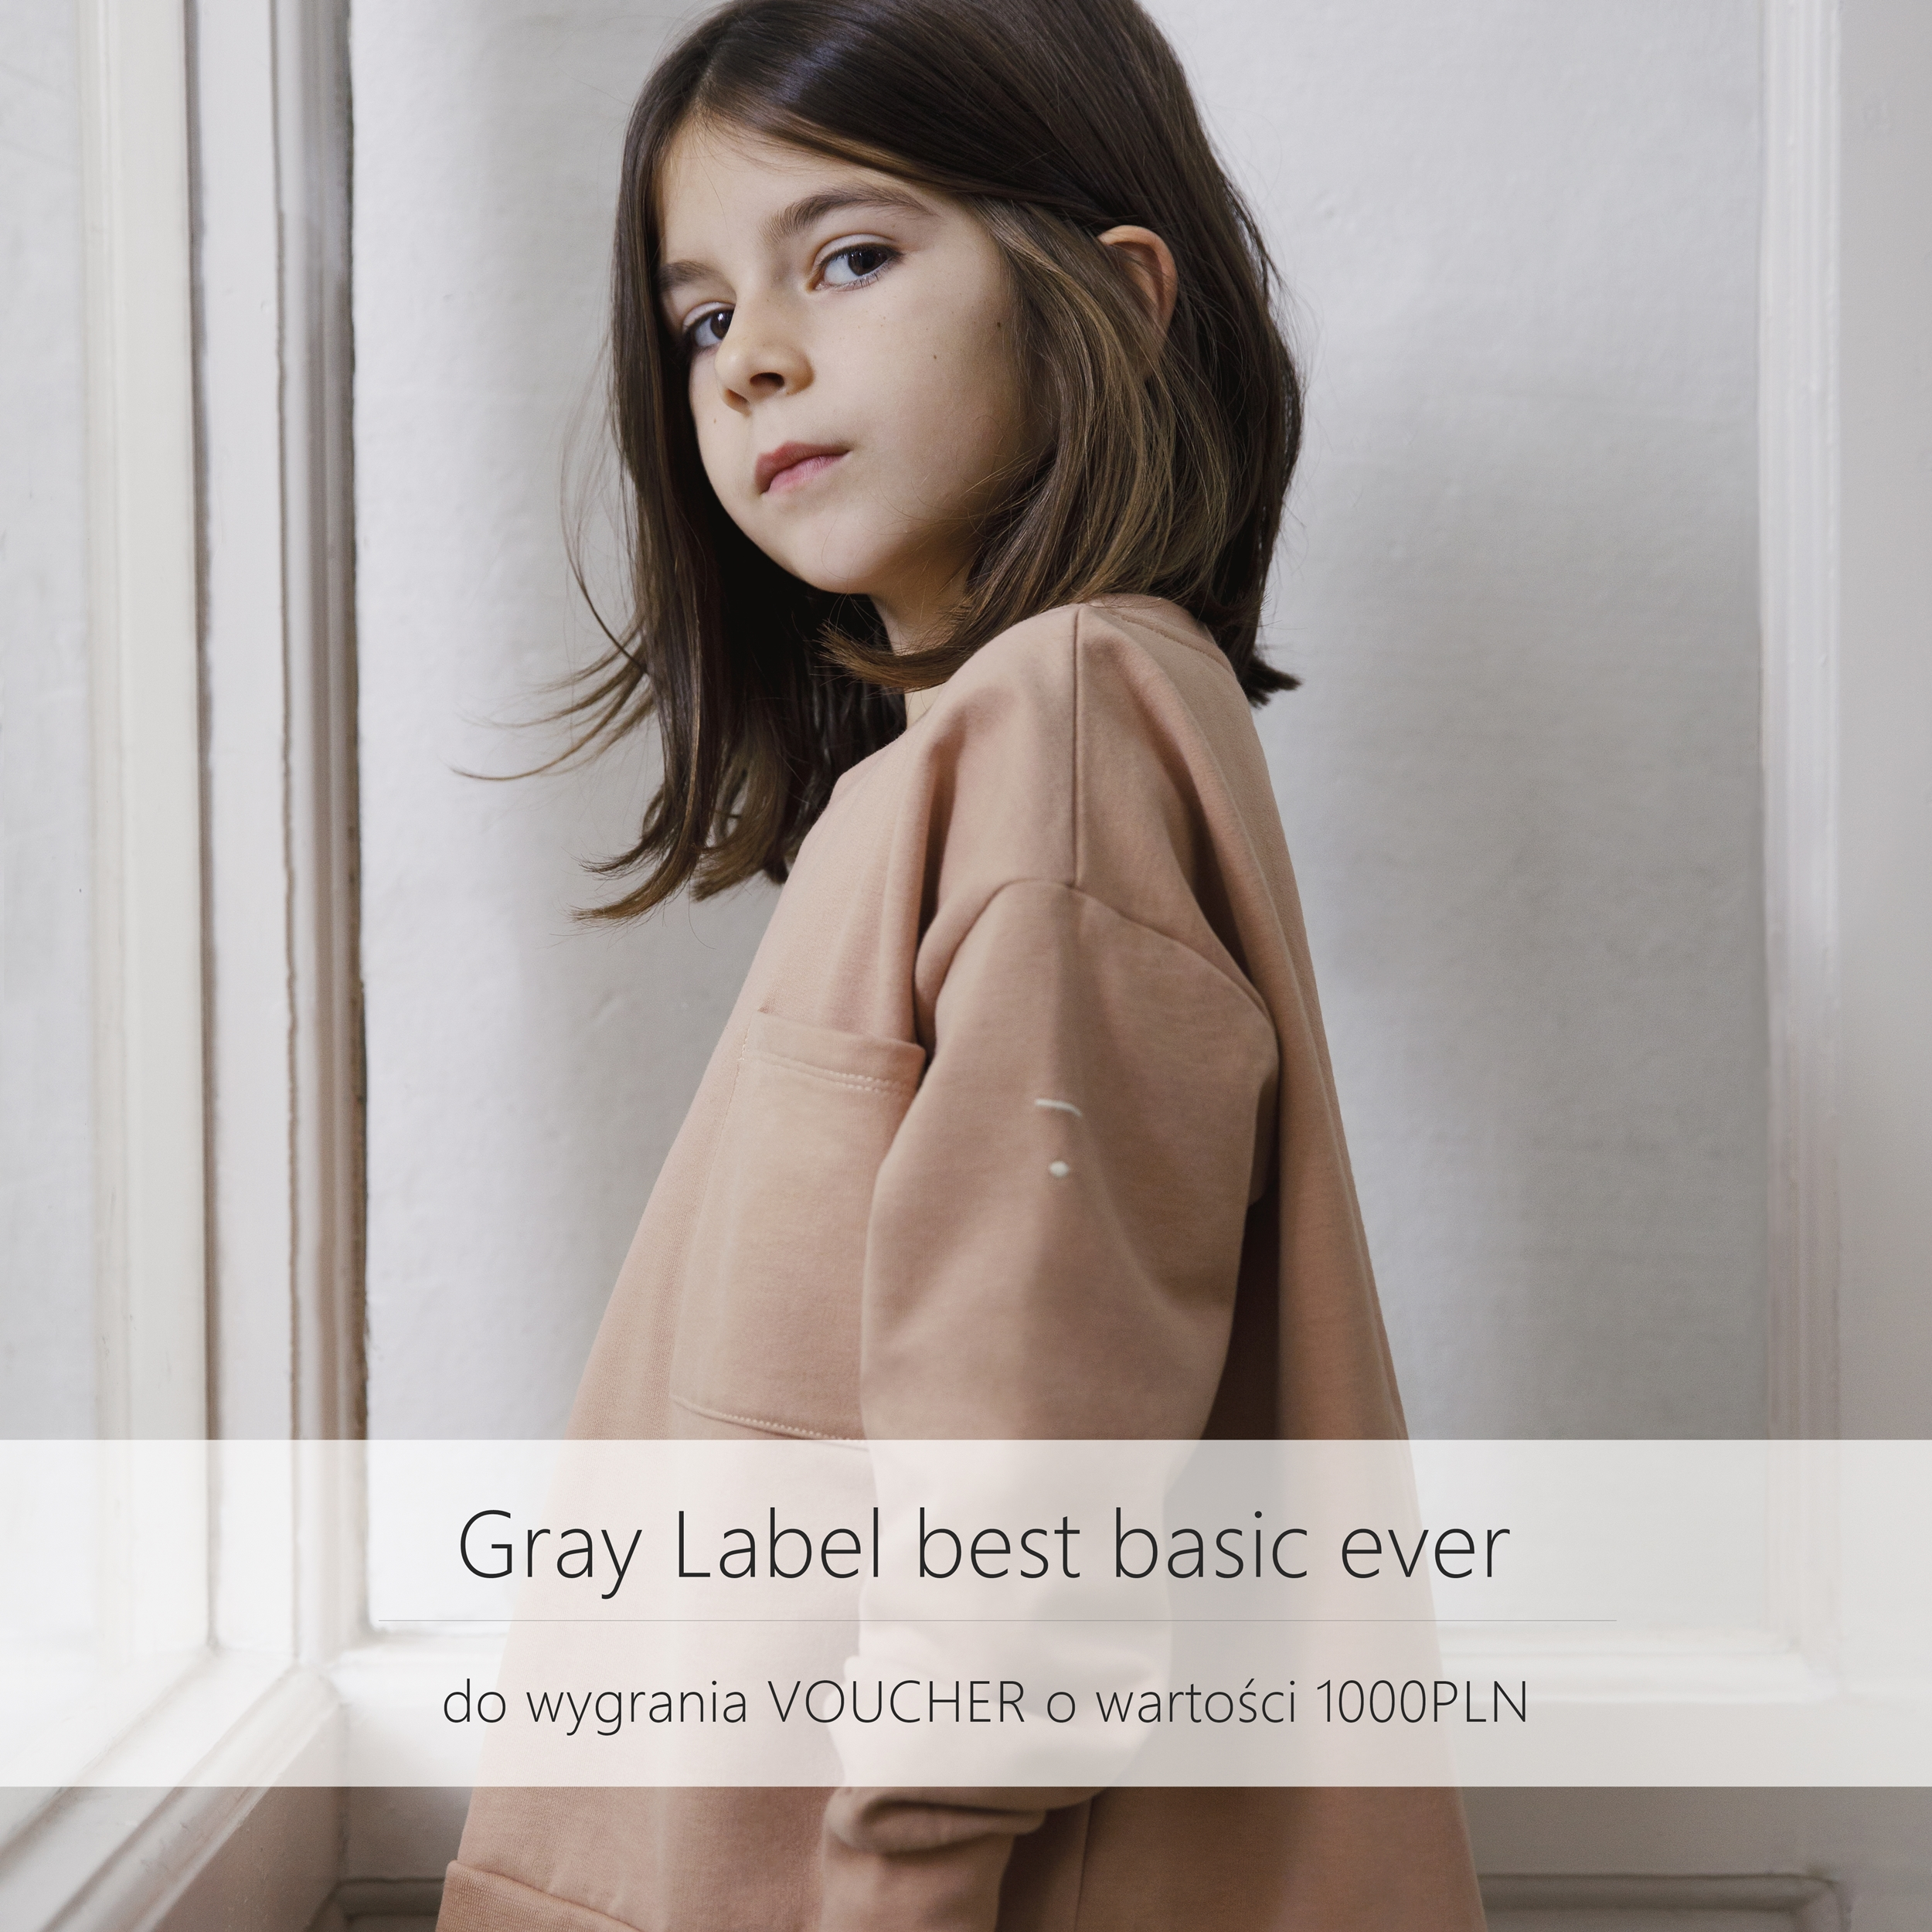 GRAY LABEL best basic ever